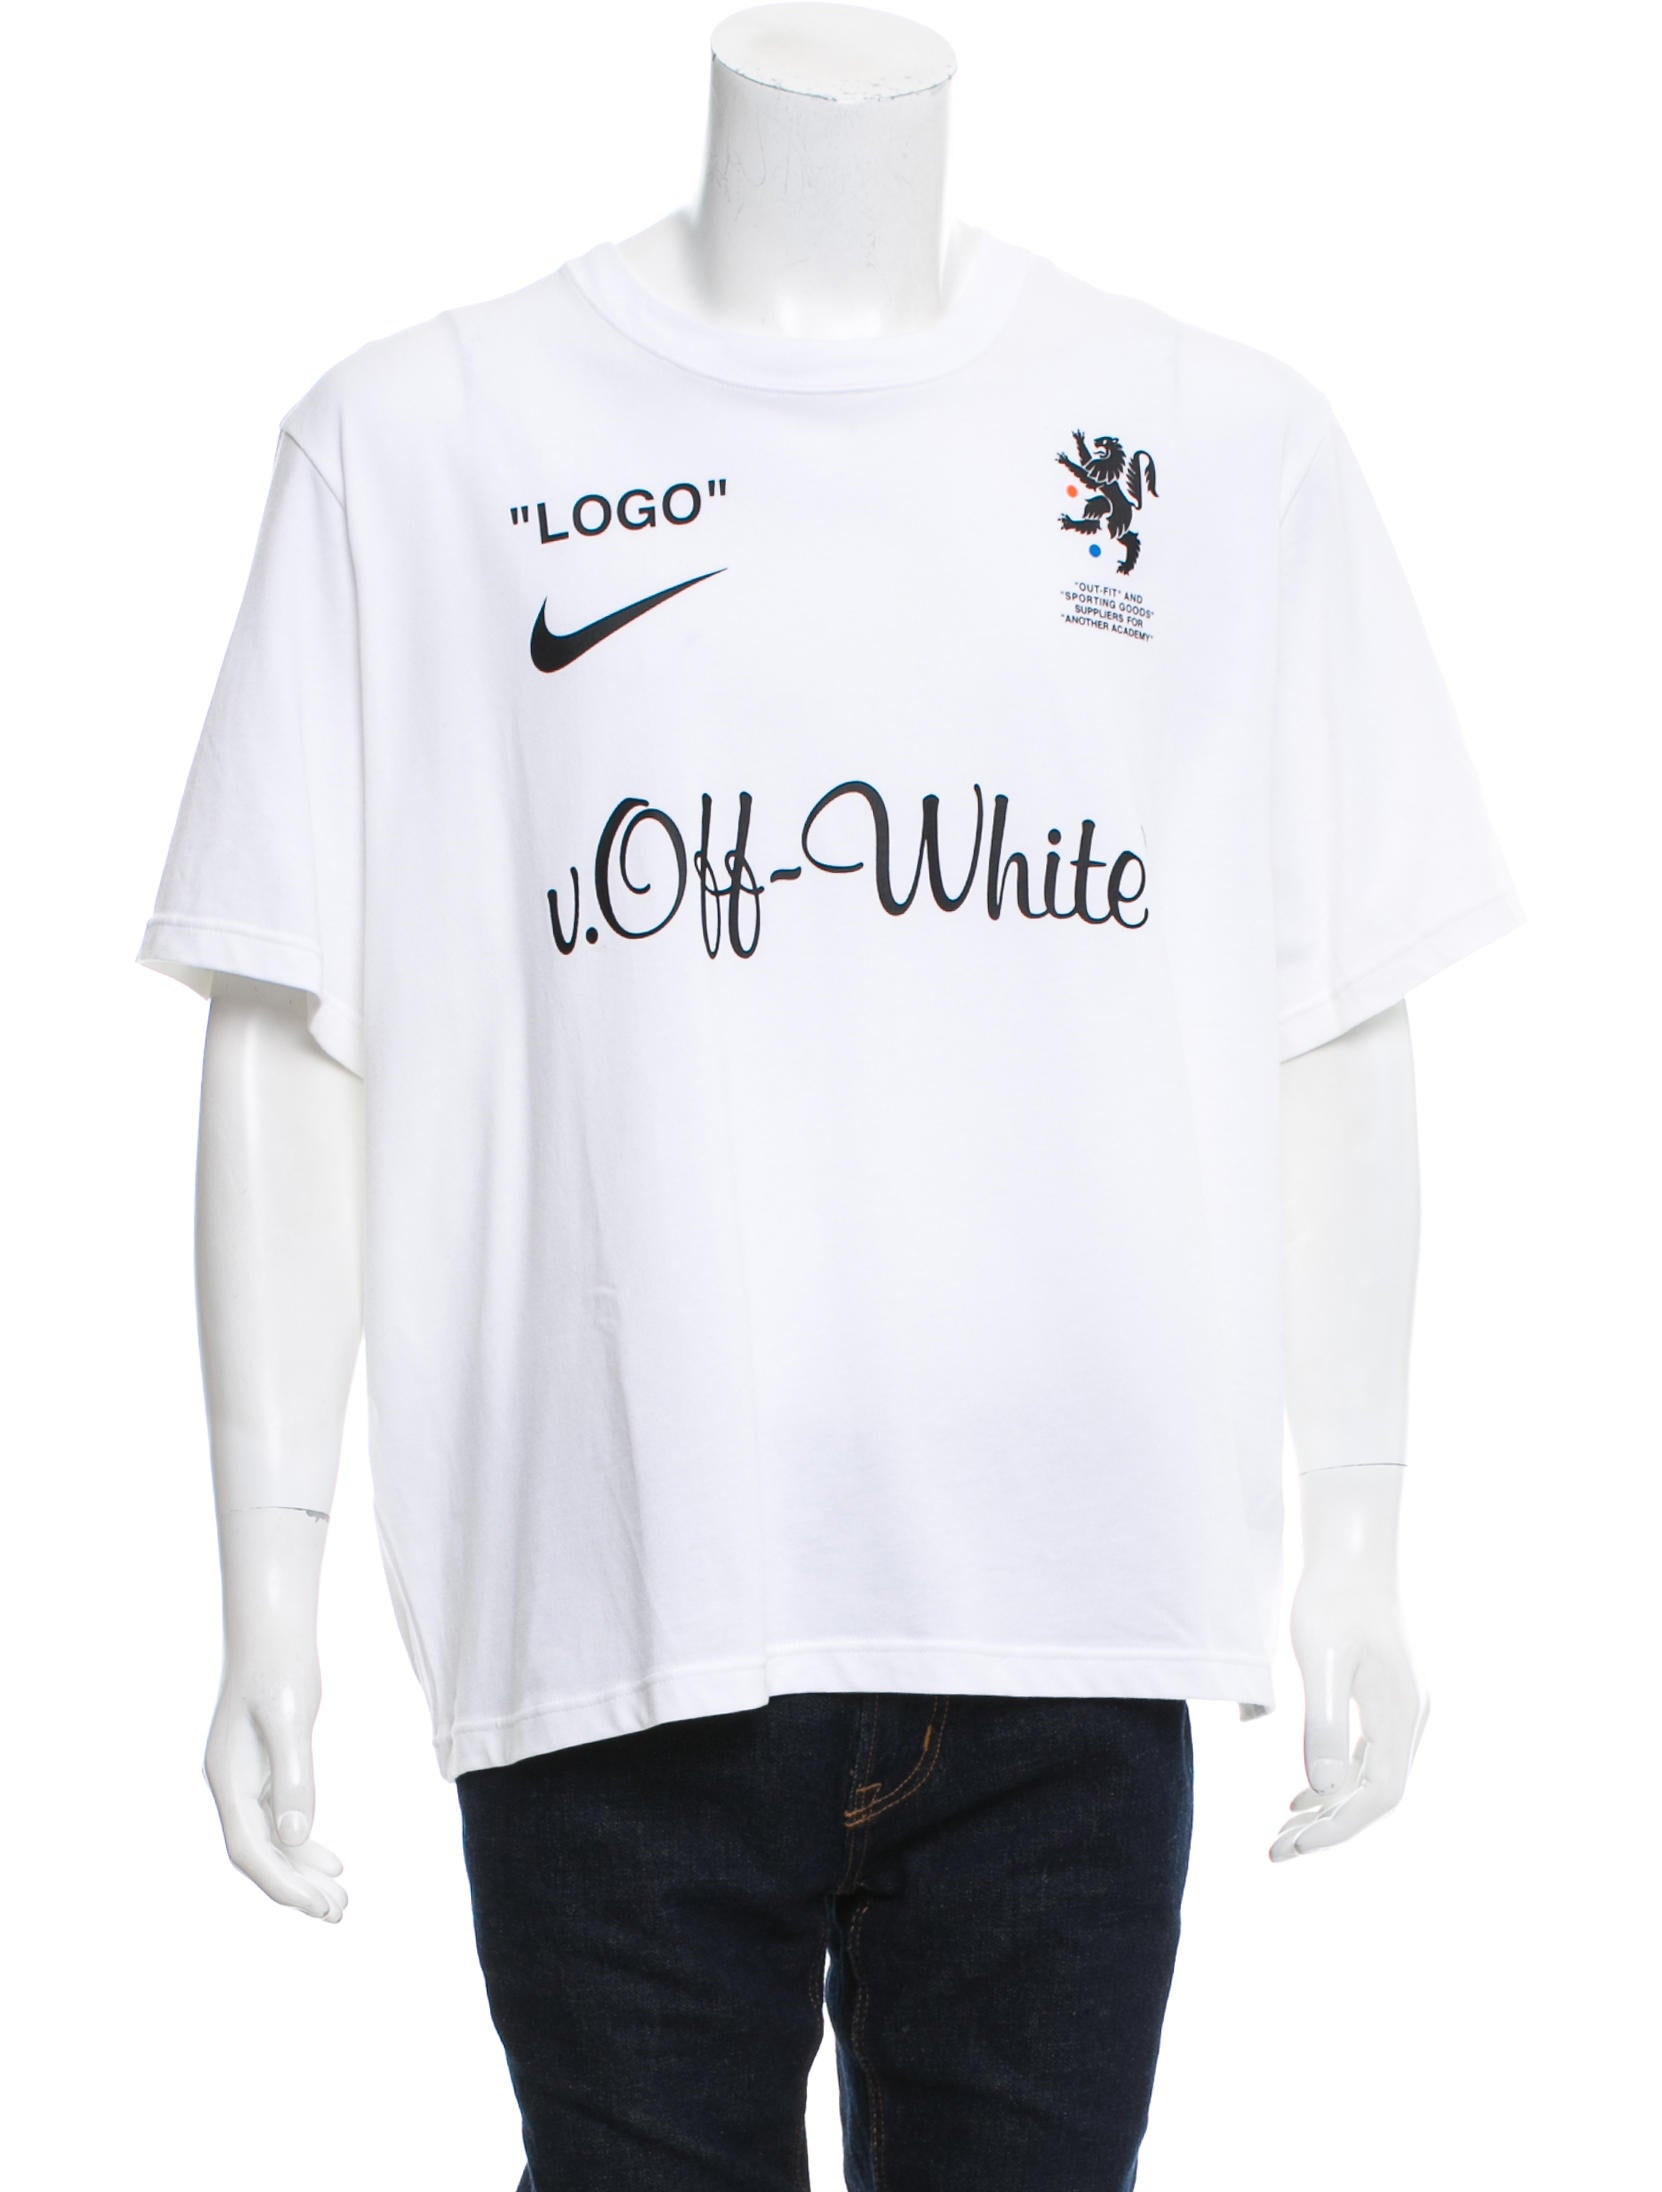 495a9626 ... 18SS FB JERSEY HOME AA3300 100 logo print home soccer jersey long  sleeves cut and sew Source · Off White x Nike 2018 Mercurial NRG T Shirt w  Tags ...